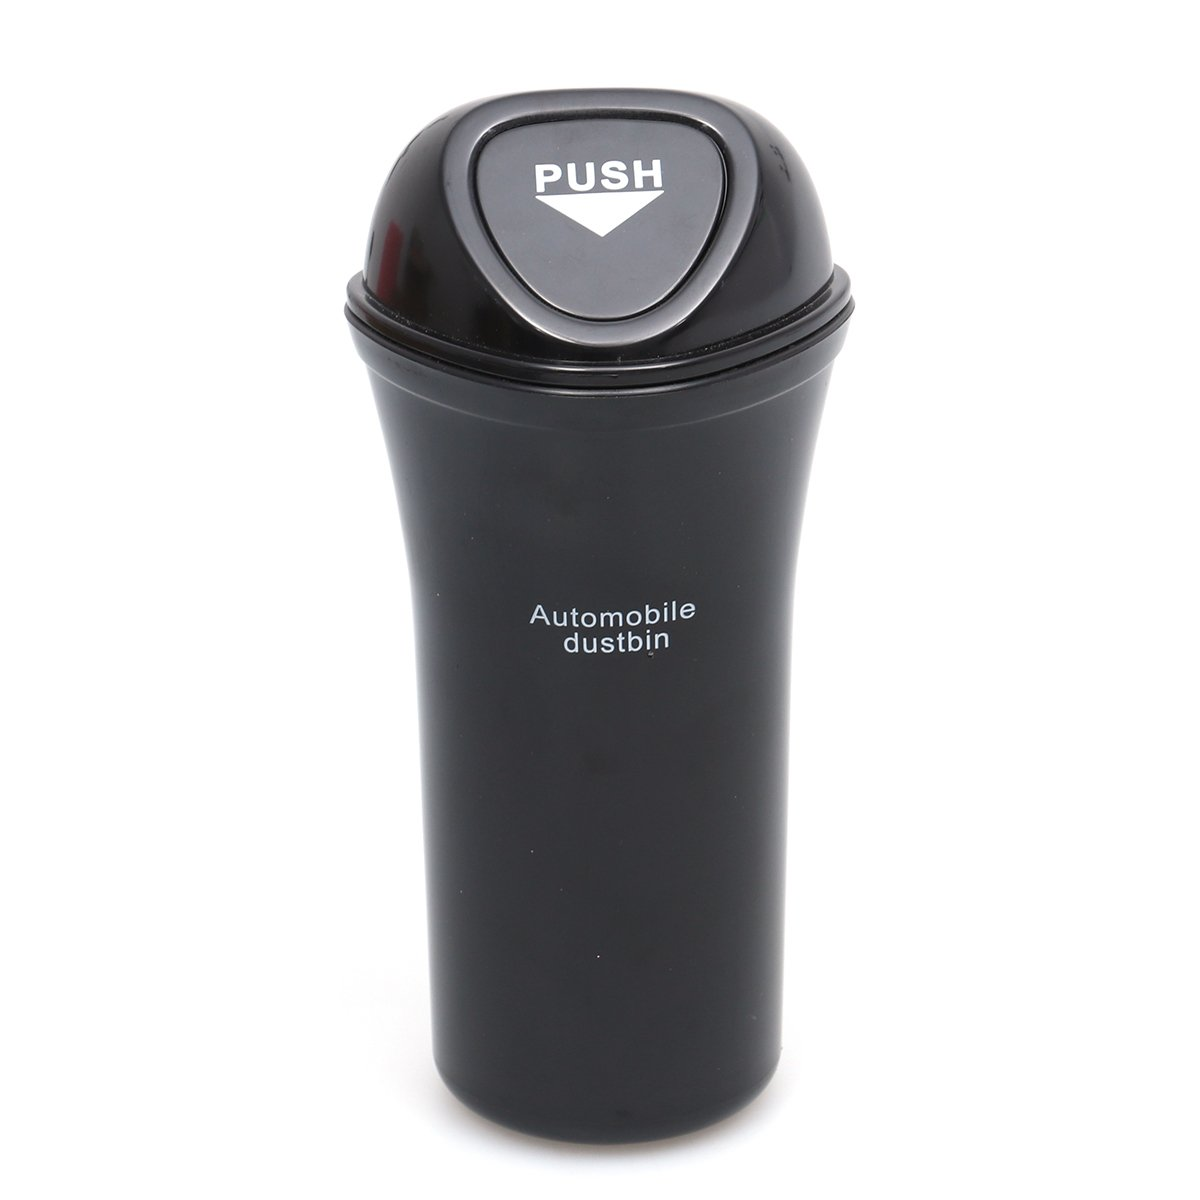 Allcaca Pop-up Leakproof Car Trash Can Multi-purpose Car Garbage Holder for Traveling Black Collapsible Storage Box